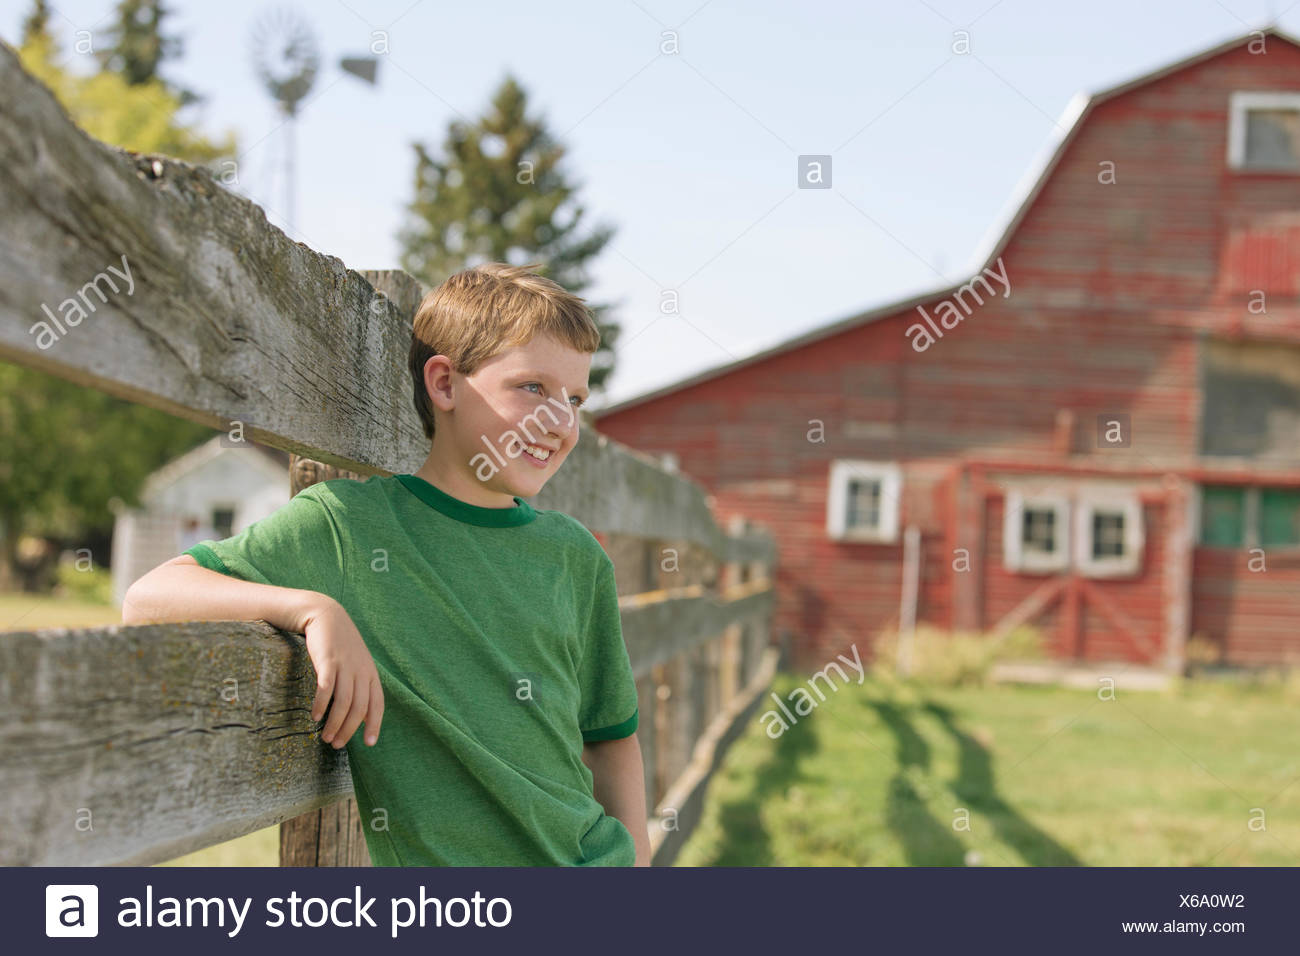 Young boy leaning on fence on rural property. Stock Photo